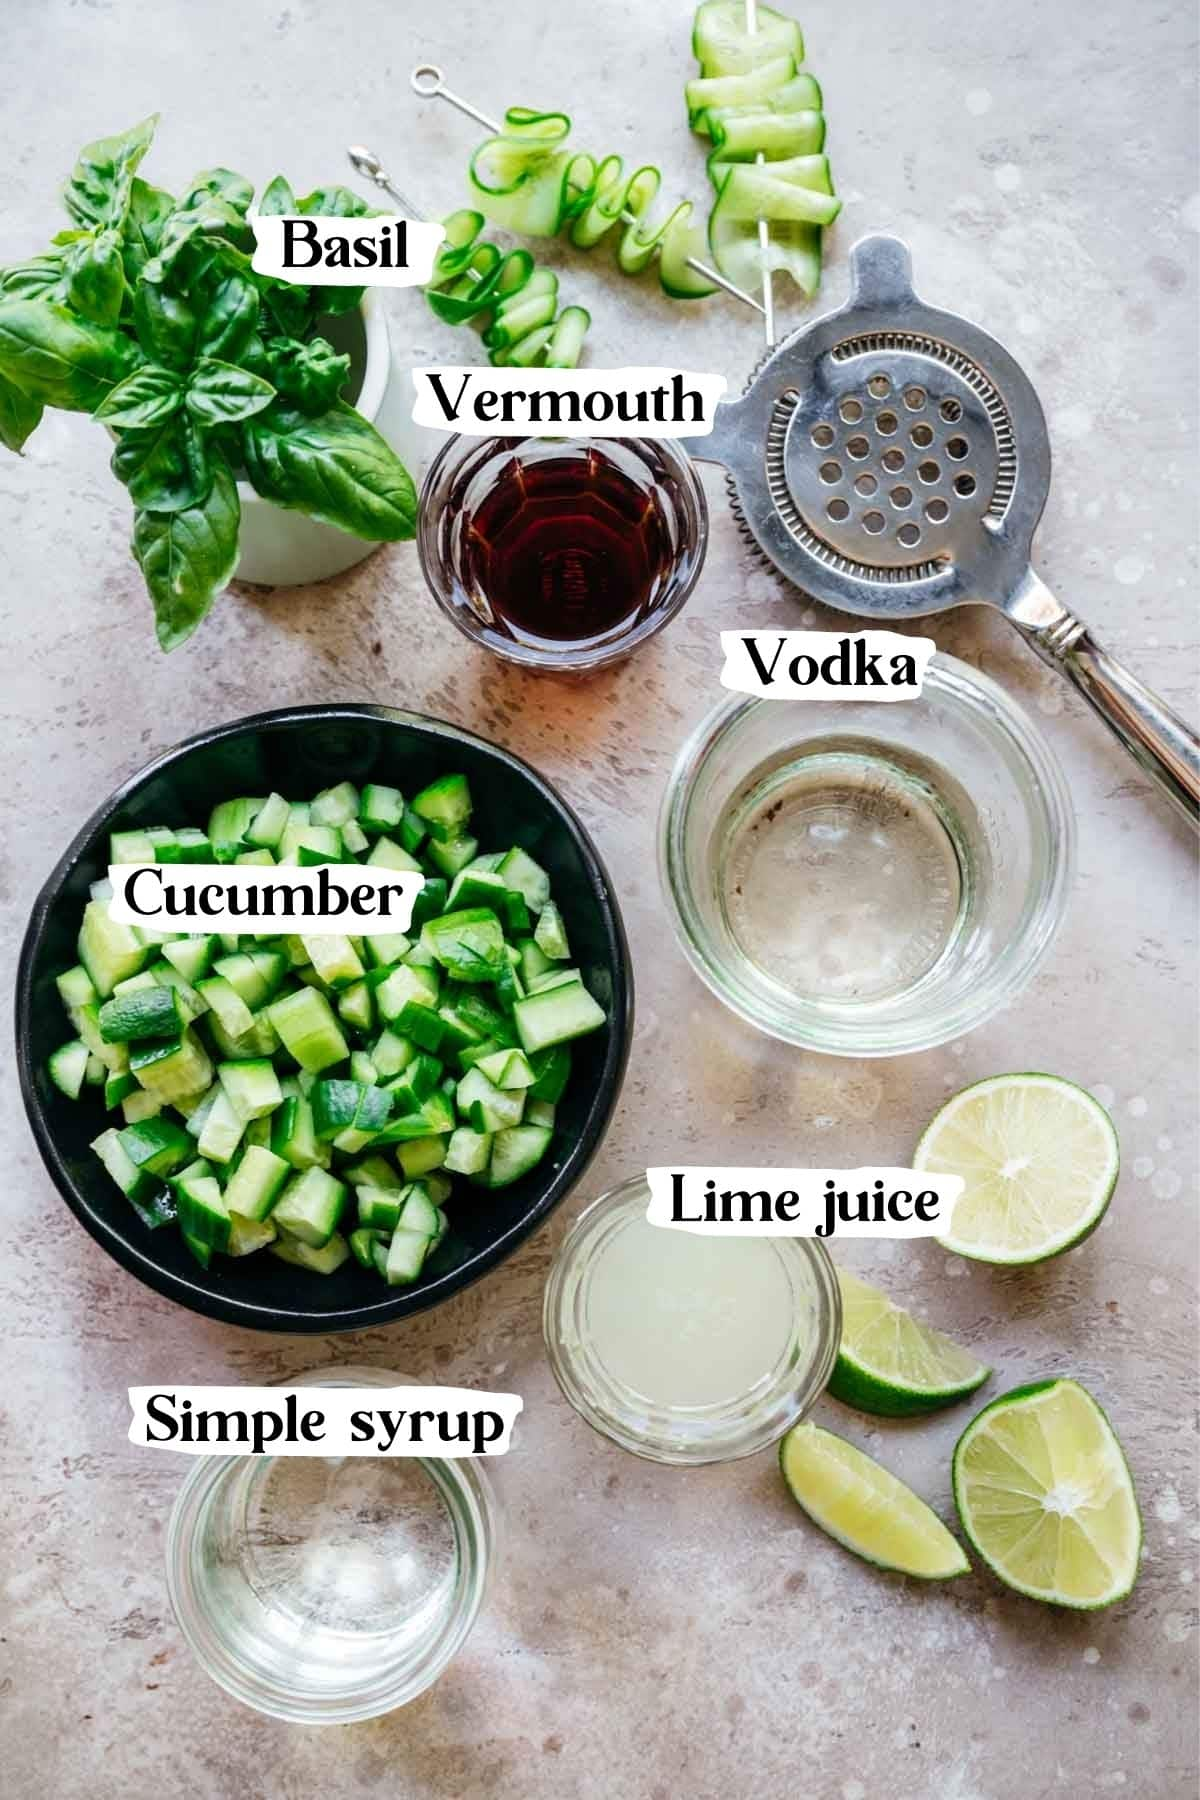 Overhead shot of ingredients needed in this recipe, including vodka, cucumber, simple syrup, basil, and vermouth.